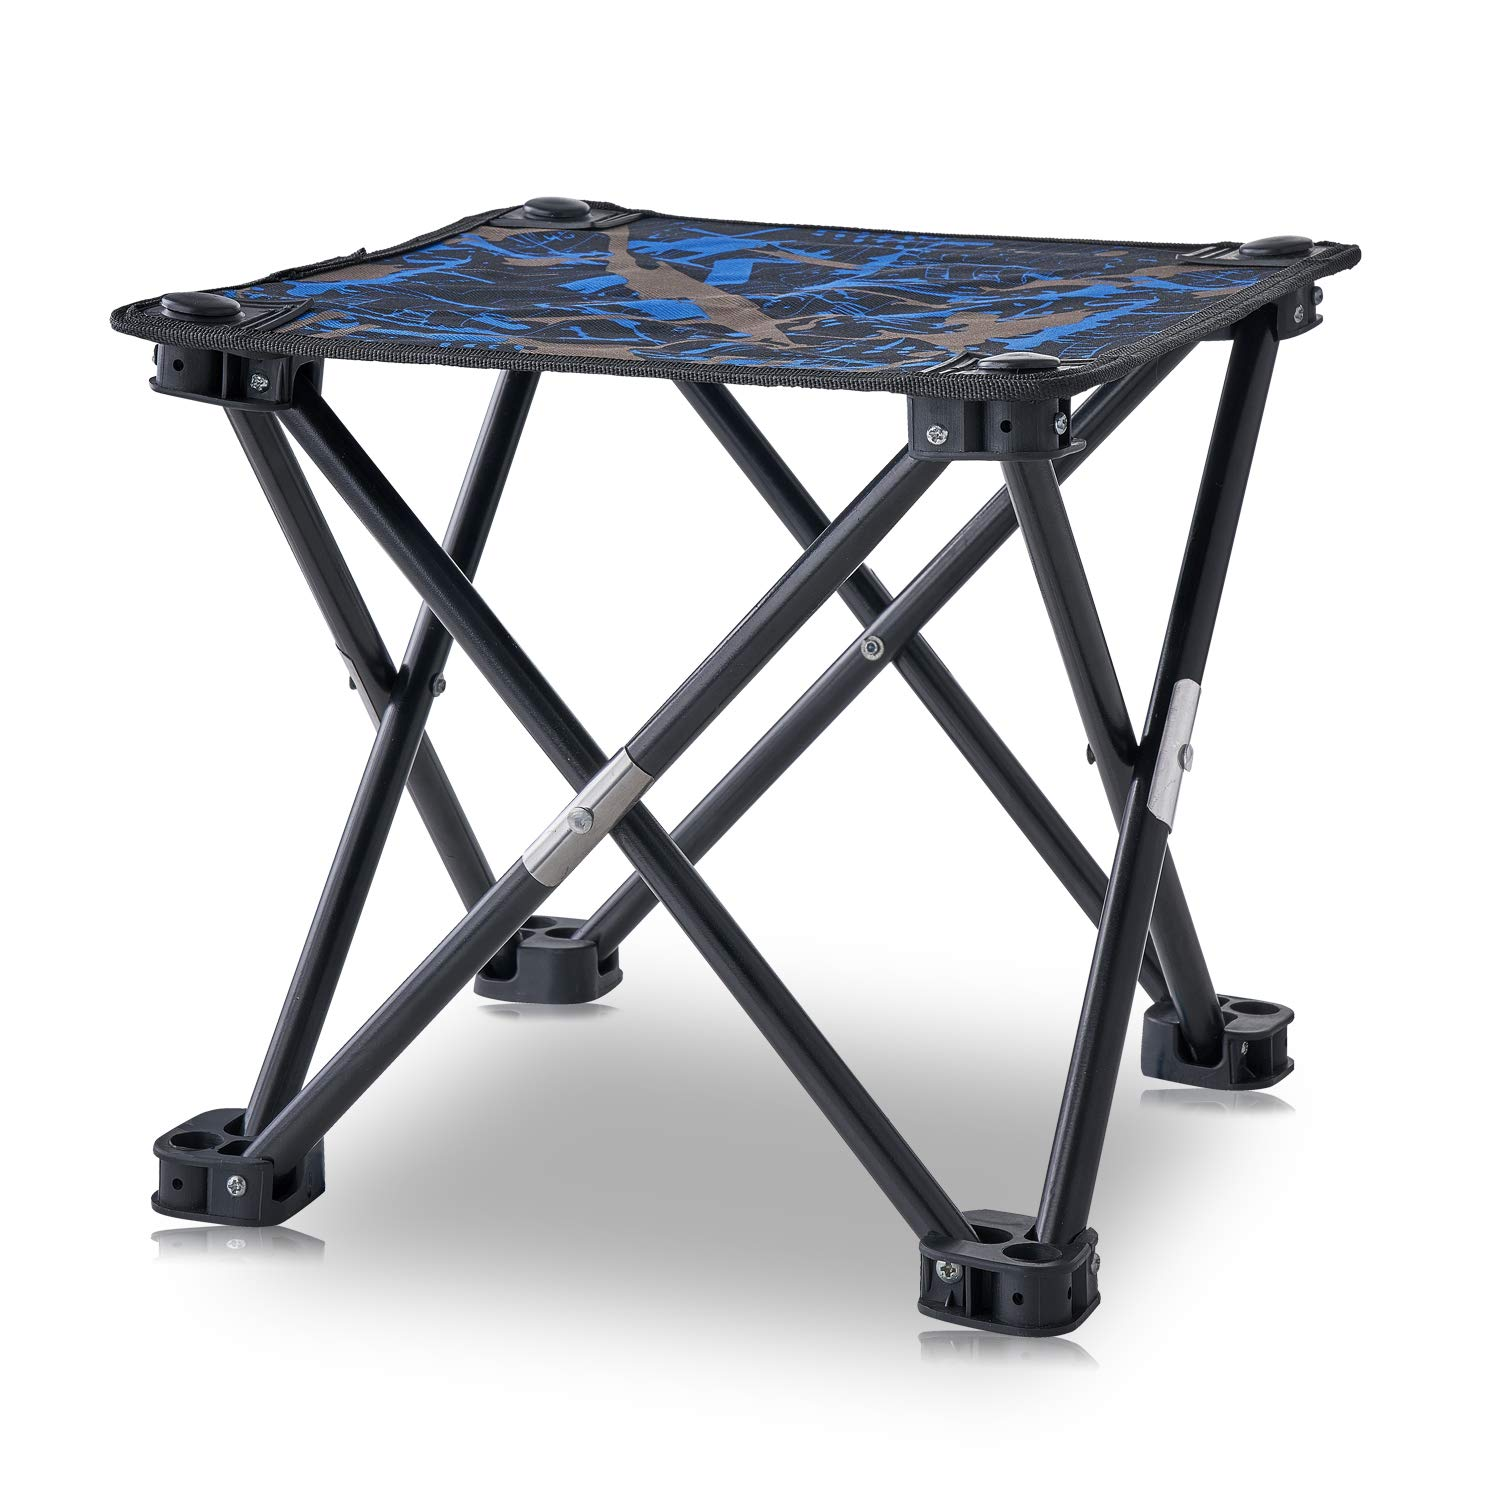 Folding Camping Stool, Mini Folding Stool Portable, Mini Portable Chair for Beach, Picnic Party, Camping, Barbecue, Fishing, Hiking, 600D Oxford Cloth with Portable Bag (Camouflage) (Blue Camo) by AILLOVCOL